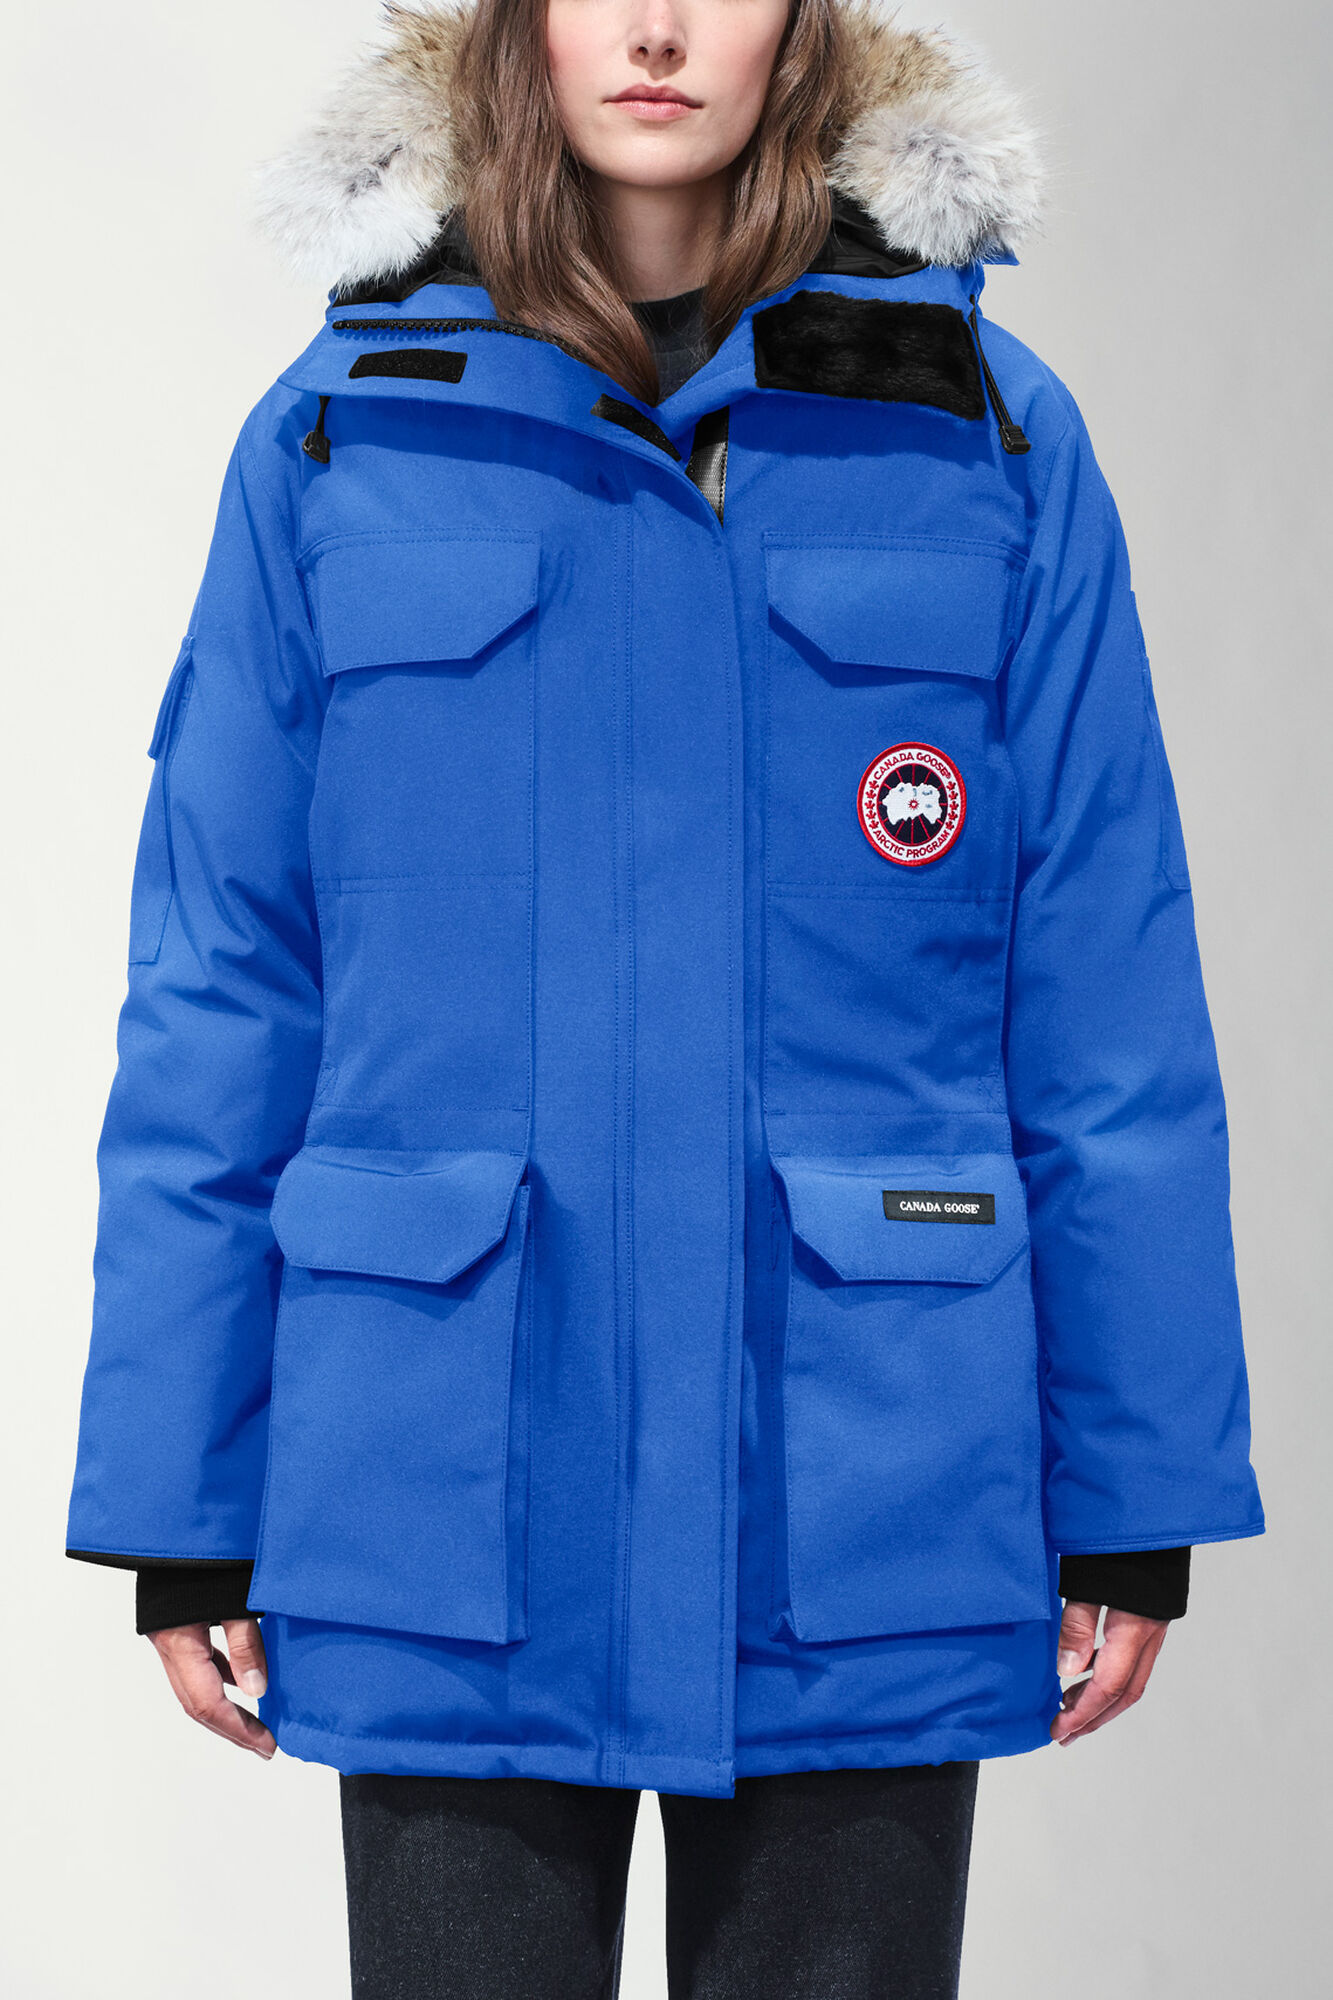 Canada Goose kensington parka outlet price - Women's Arctic Program Expedition Parka | Canada Goose?